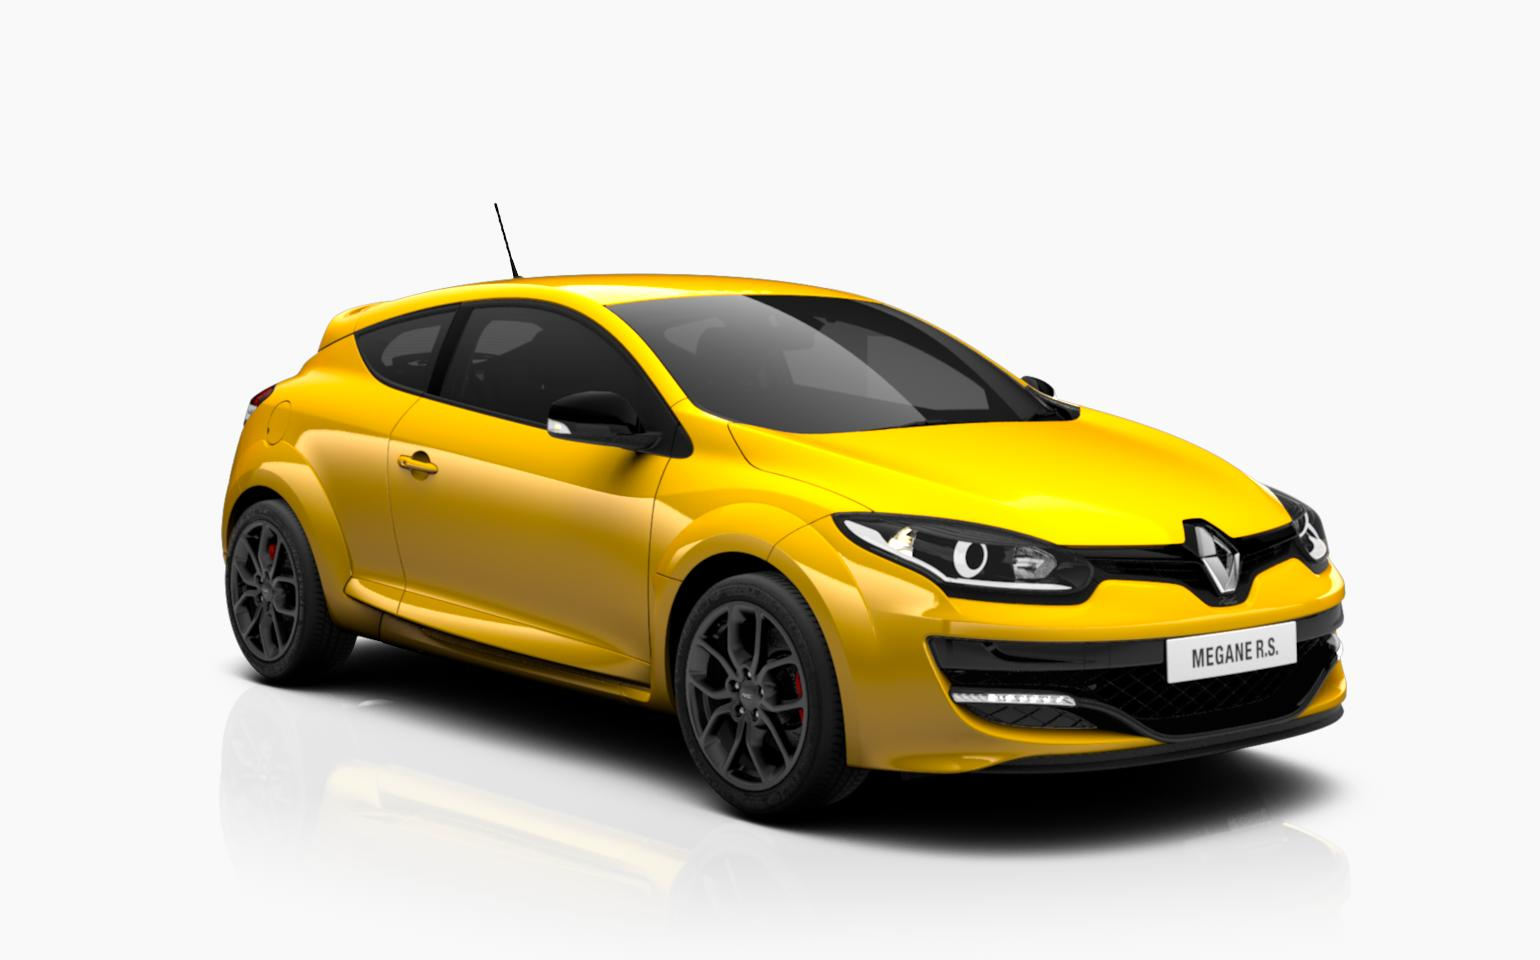 renault megane sport occasion renaultsport megane review richard hammond says that it. Black Bedroom Furniture Sets. Home Design Ideas